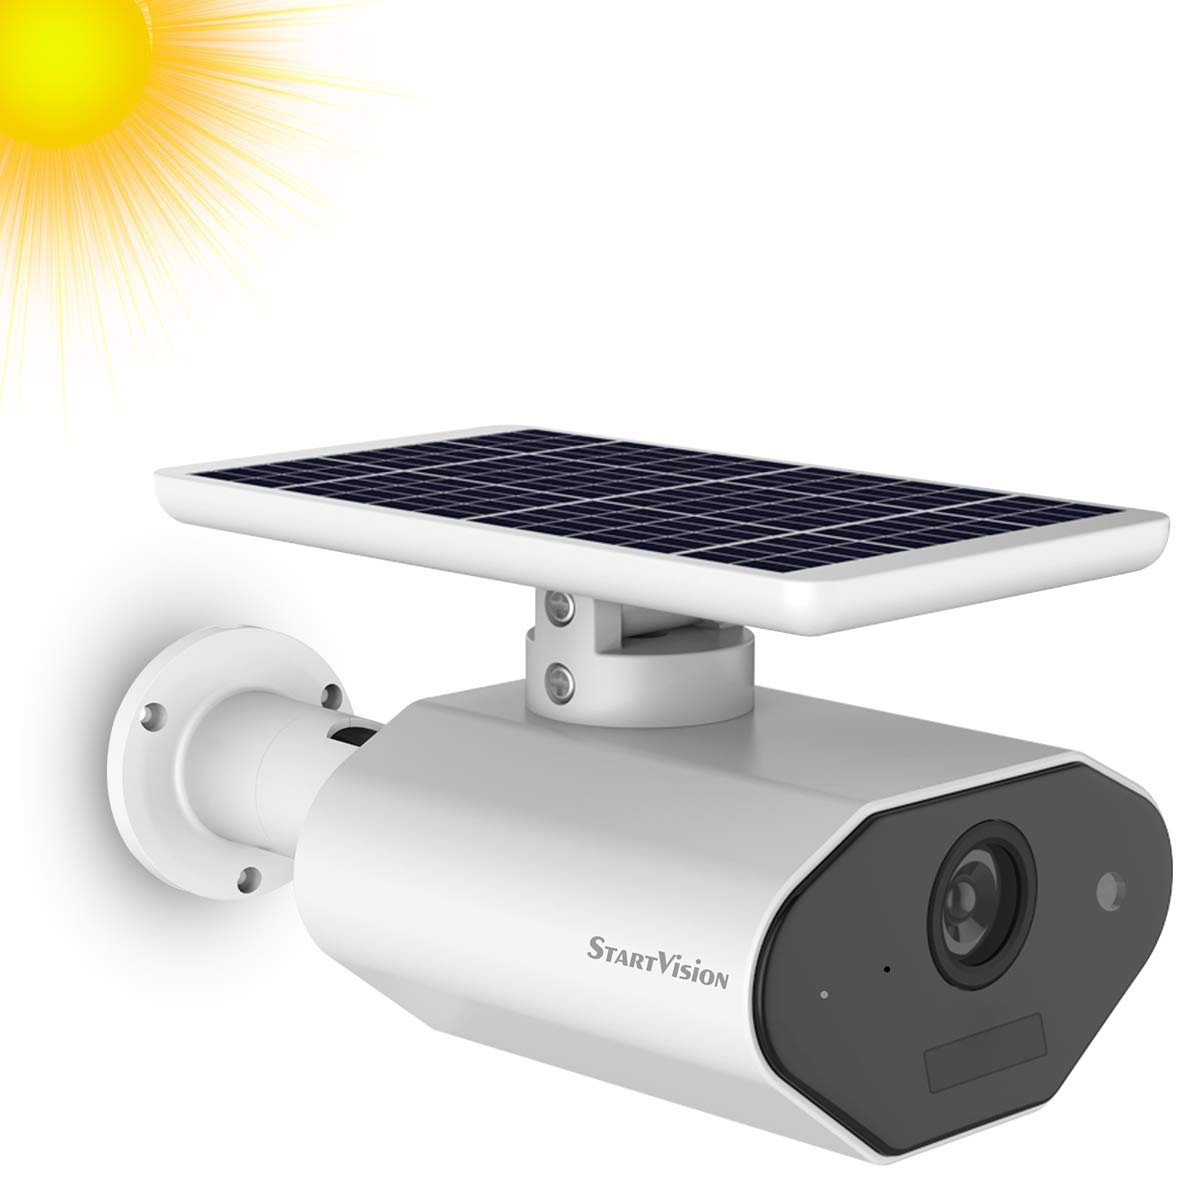 Start Vision Wireless Solar Powered Home Security Camera